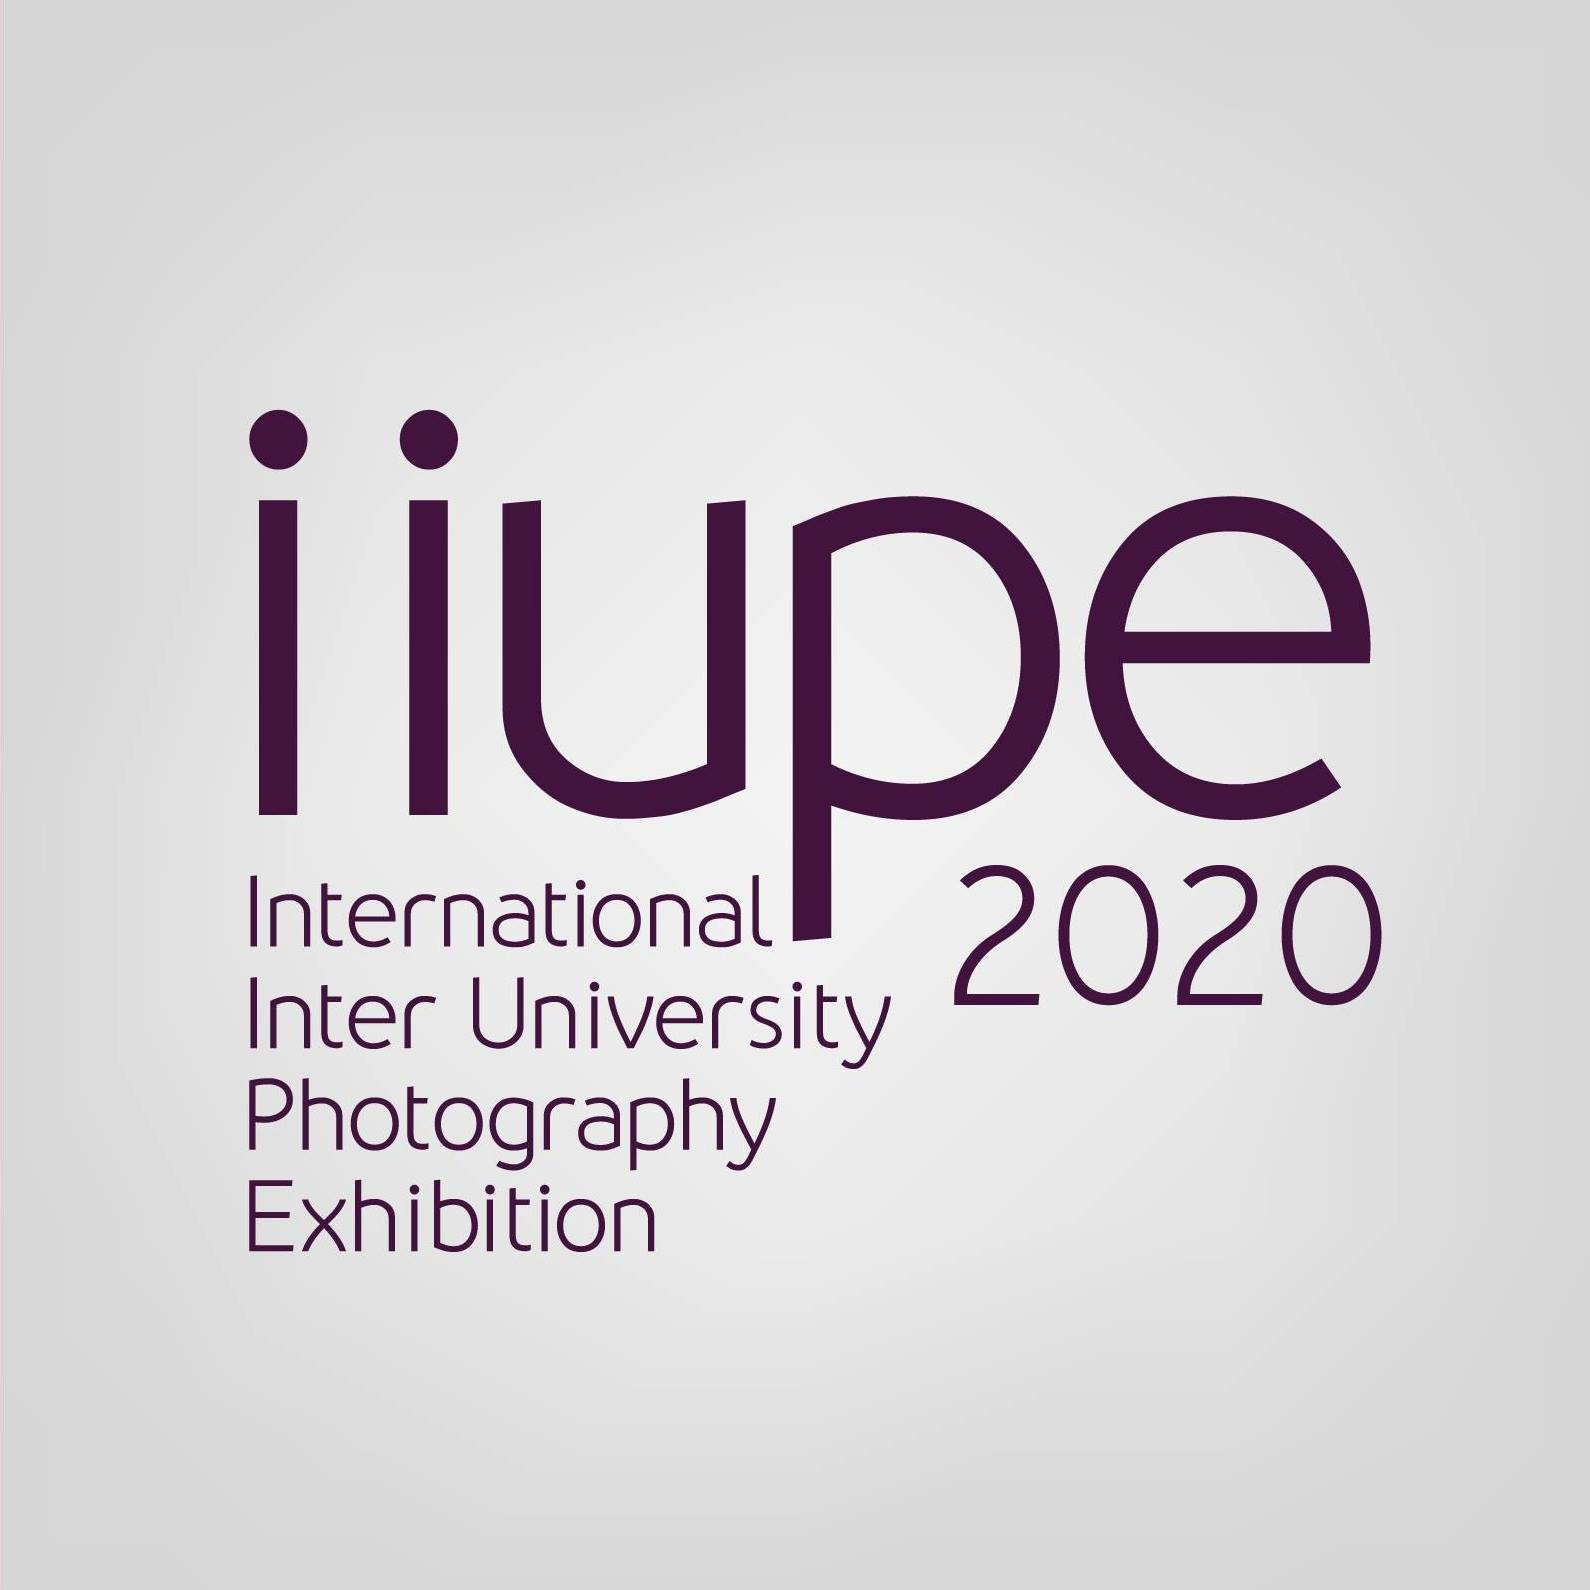 International Inter University Photography Exhibition 2020